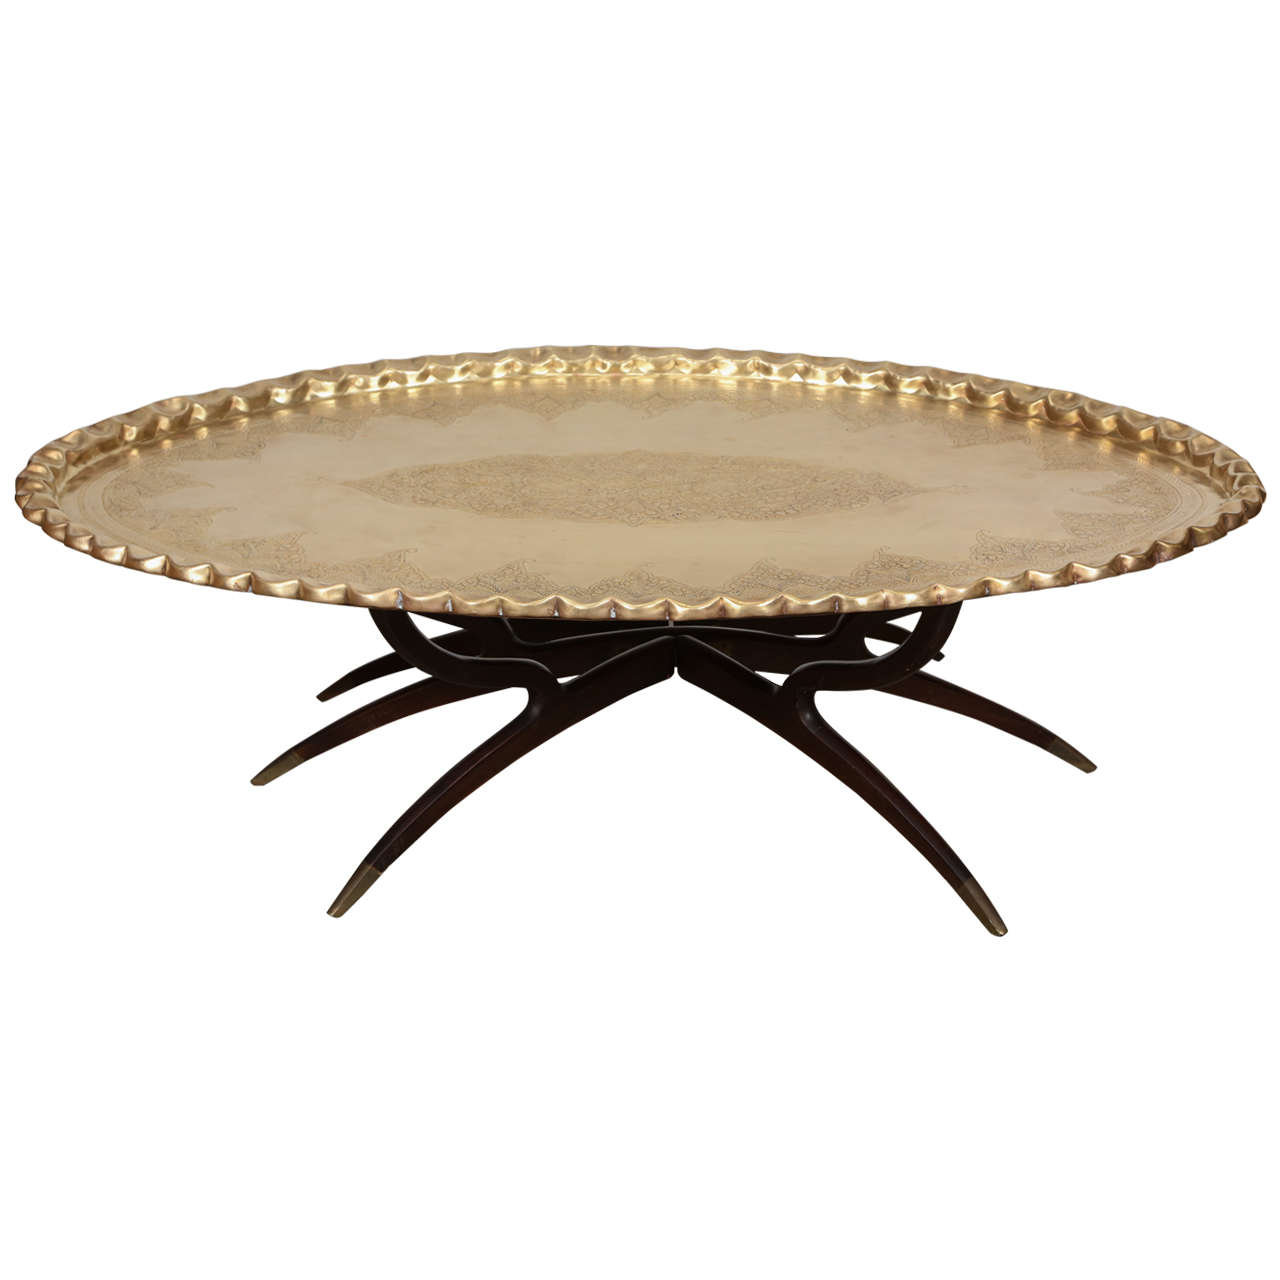 Brass tray coffee table on spider legs at 1stdibs Legs for a coffee table